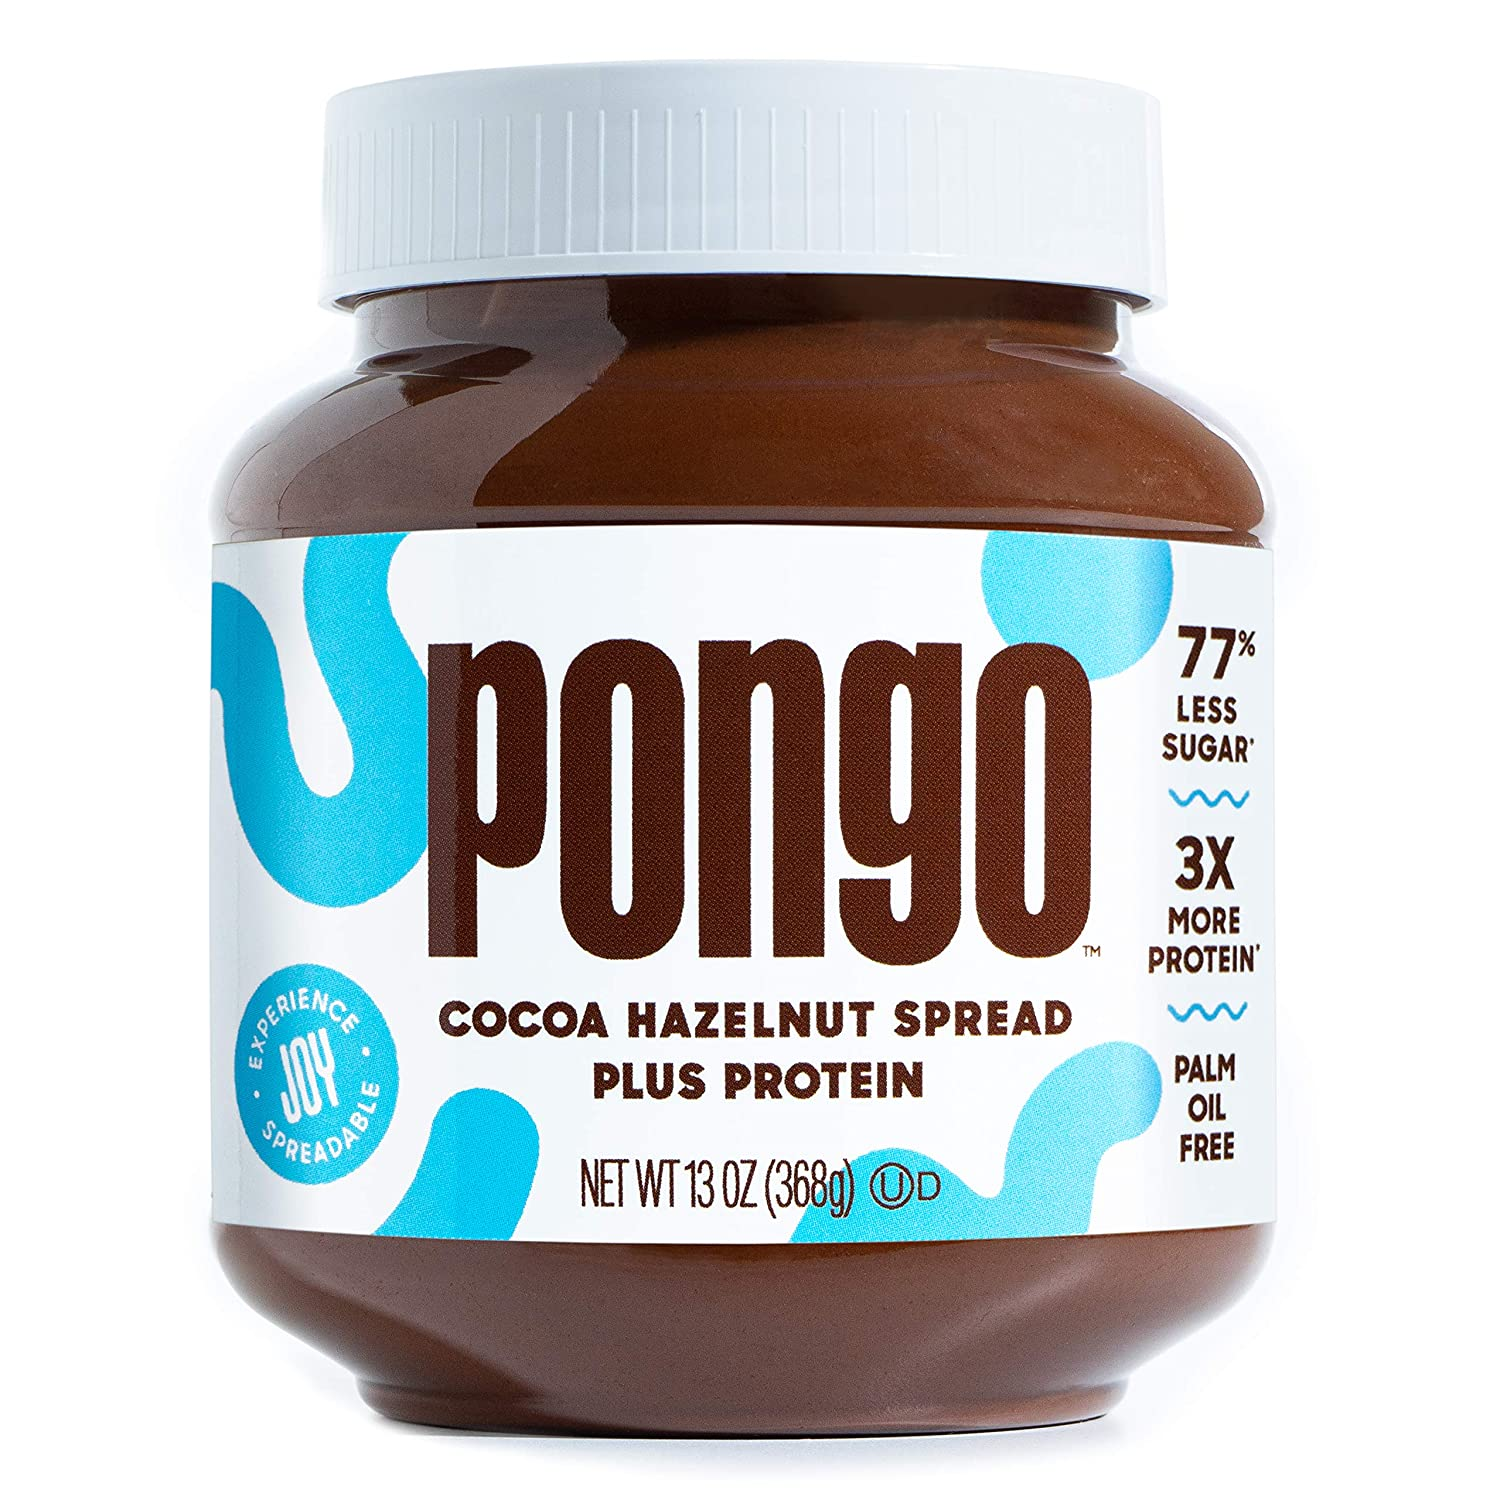 Pongo Cocoa Hazelnut Protein Spread - Low Sugar and Low Carb - Natural Flavor - Keto-Friendly Spread for Breakfast, Snacks & Desserts - No Palm Oil & Artificial Sweeteners - 13 oz